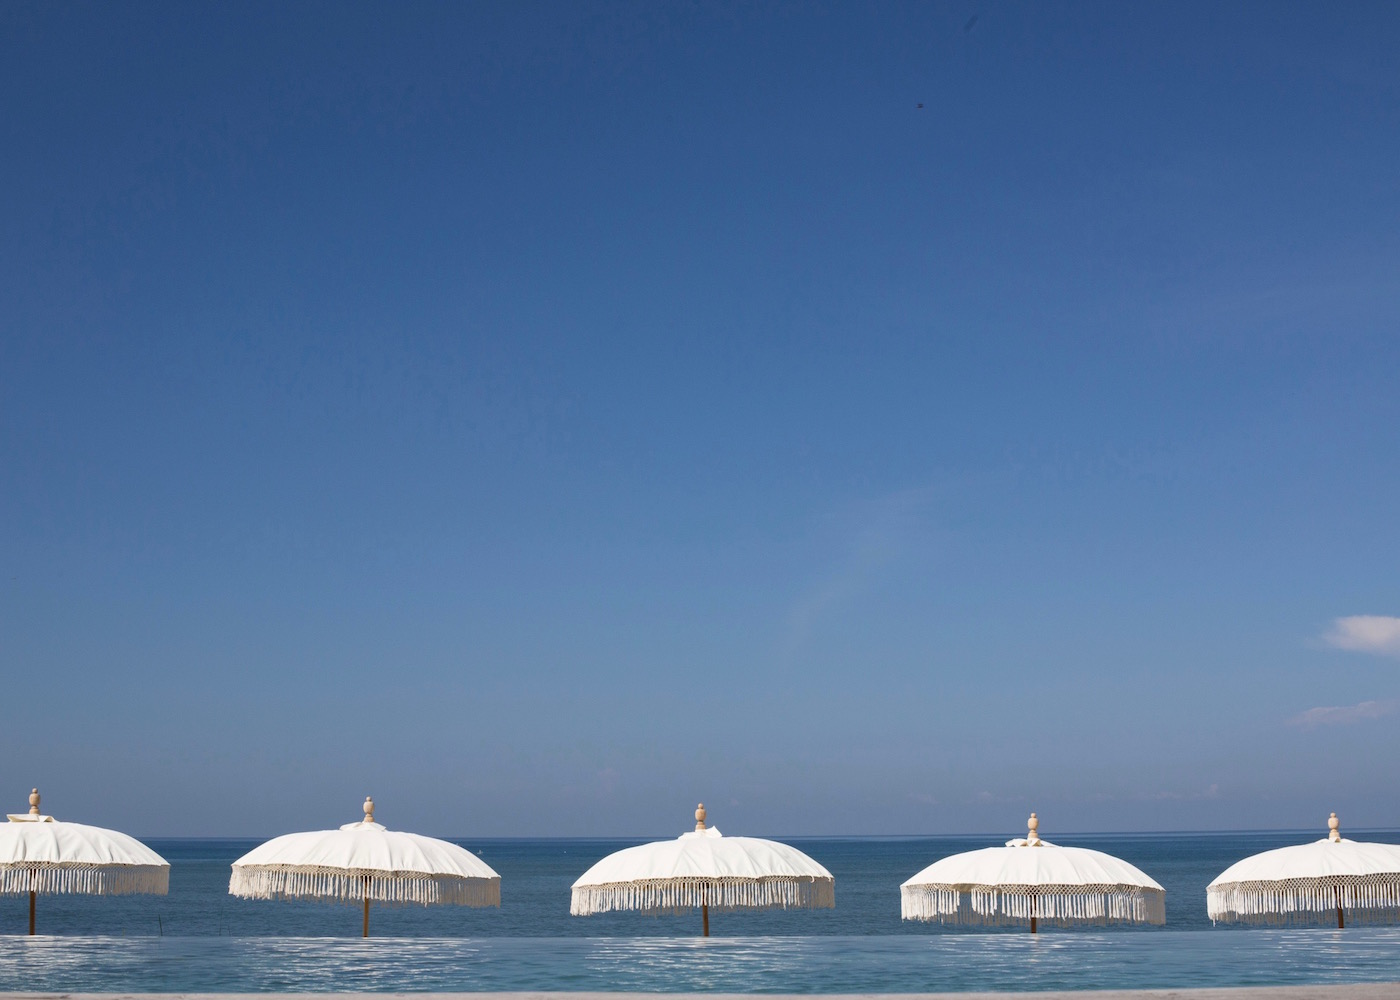 White umbrellas and infinity pool overlooking the ocean at The Lawn beach club in Canggu, Bali, Indonesia